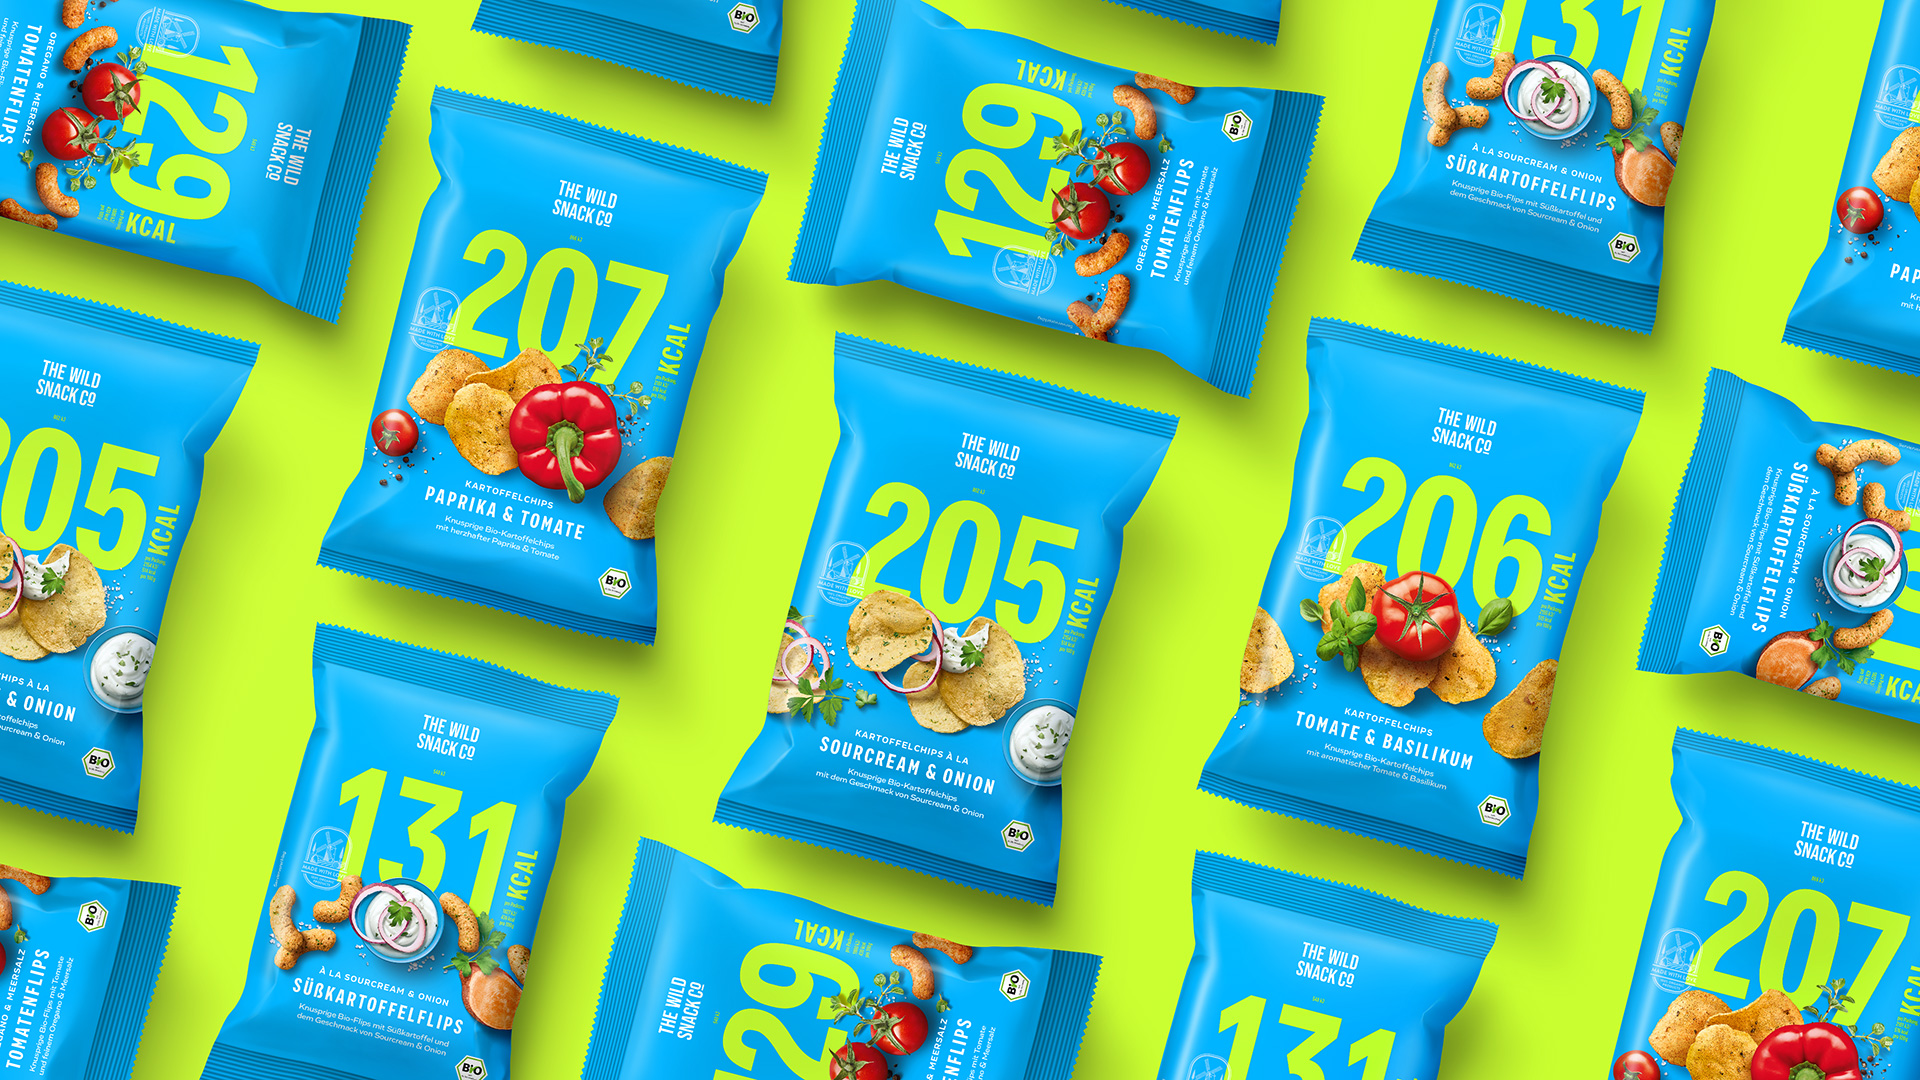 Packaging Design for The Wild Snack Company's Crisps and Puffs